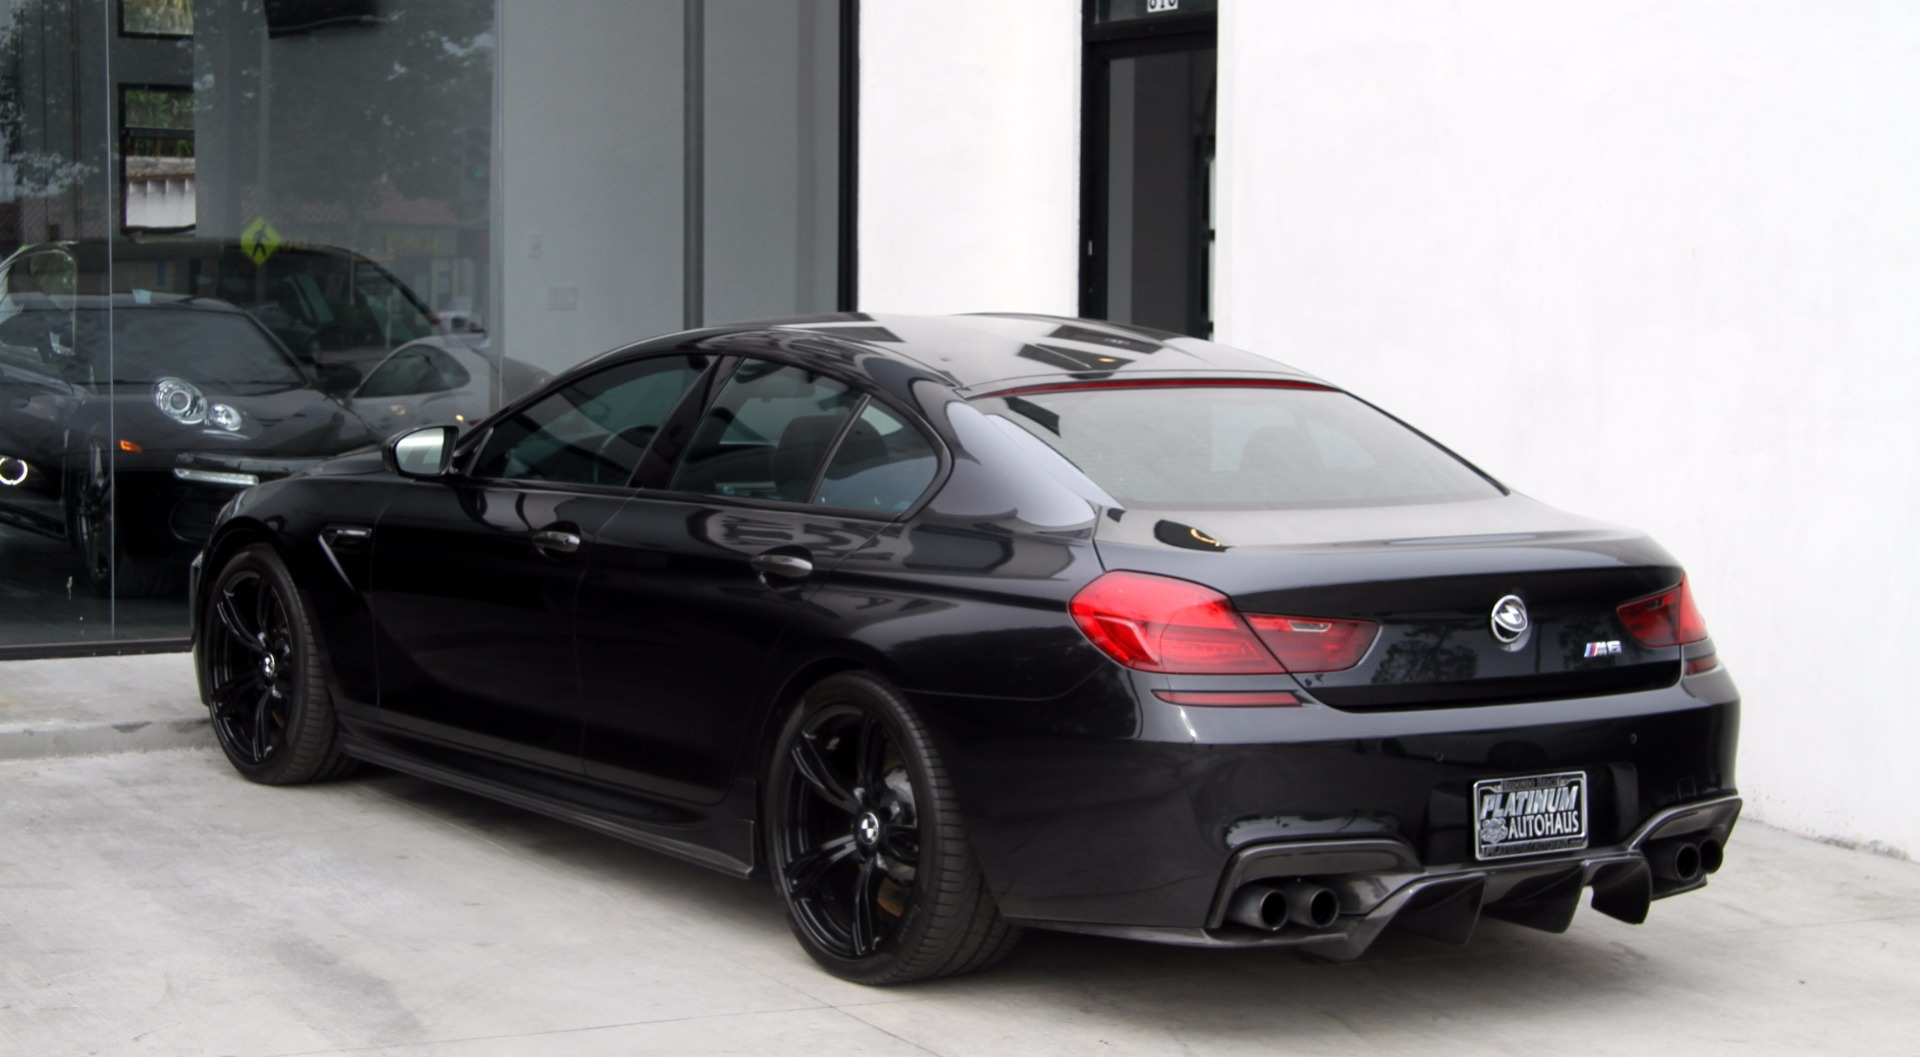 Bmw Dealer Near Me >> 2014 BMW M6 Gran Coupe Stock # 5581 for sale near Redondo Beach, CA | CA BMW Dealer